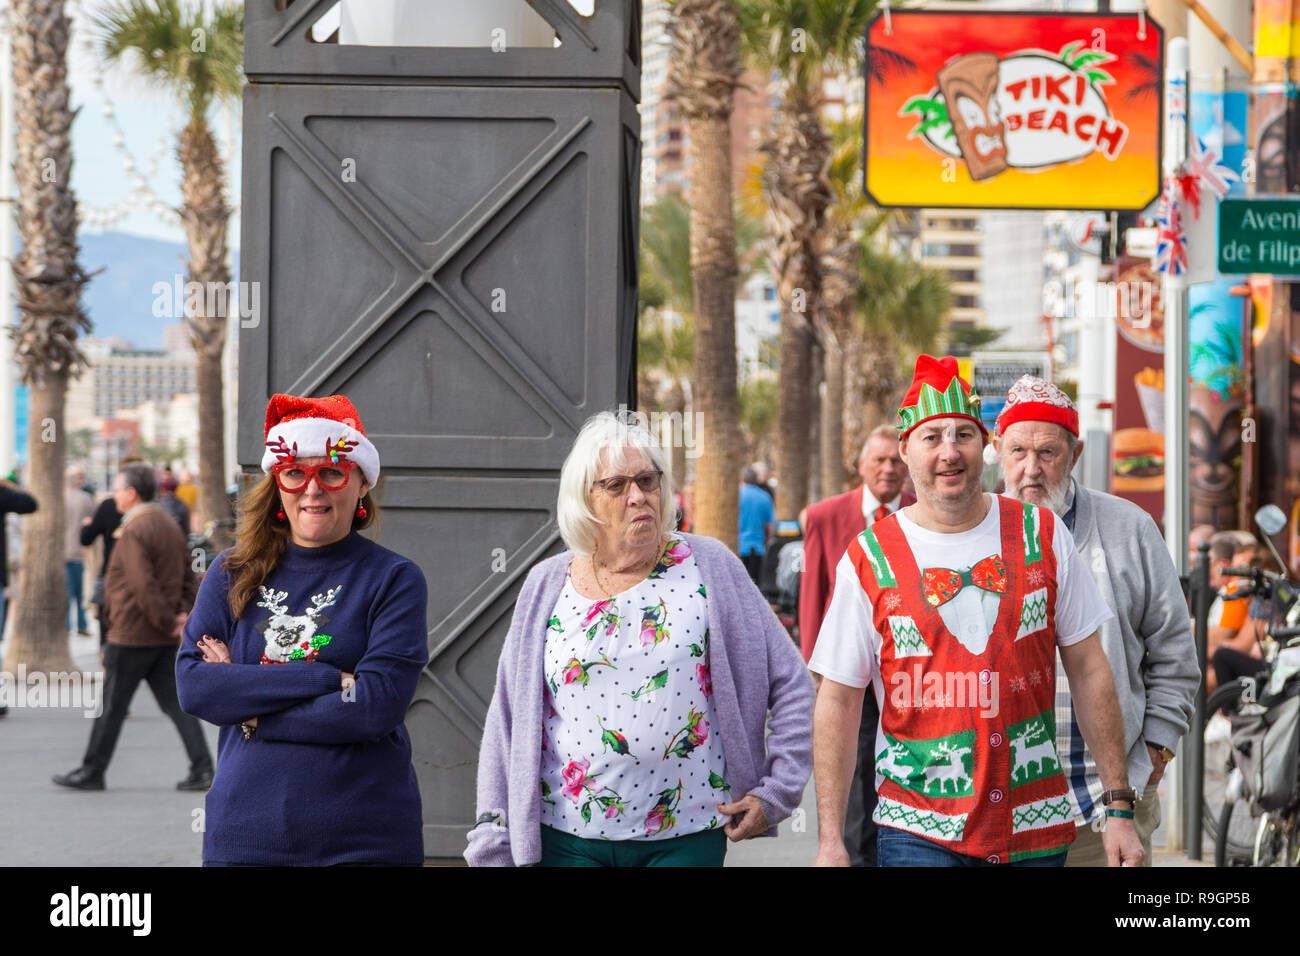 Benidorm, Costa Blanca, Spain, 25th December 2018. British tourists dress for the occasion on Christmas Day in this favourite getaway destination for Brits escaping the cold weather at home. Temperatures will be in the mid to high 20's Celsius today in this mediterranean hotspot.  Middle aged people wearing Christmas jumpers outside in the sun. Stock Photo